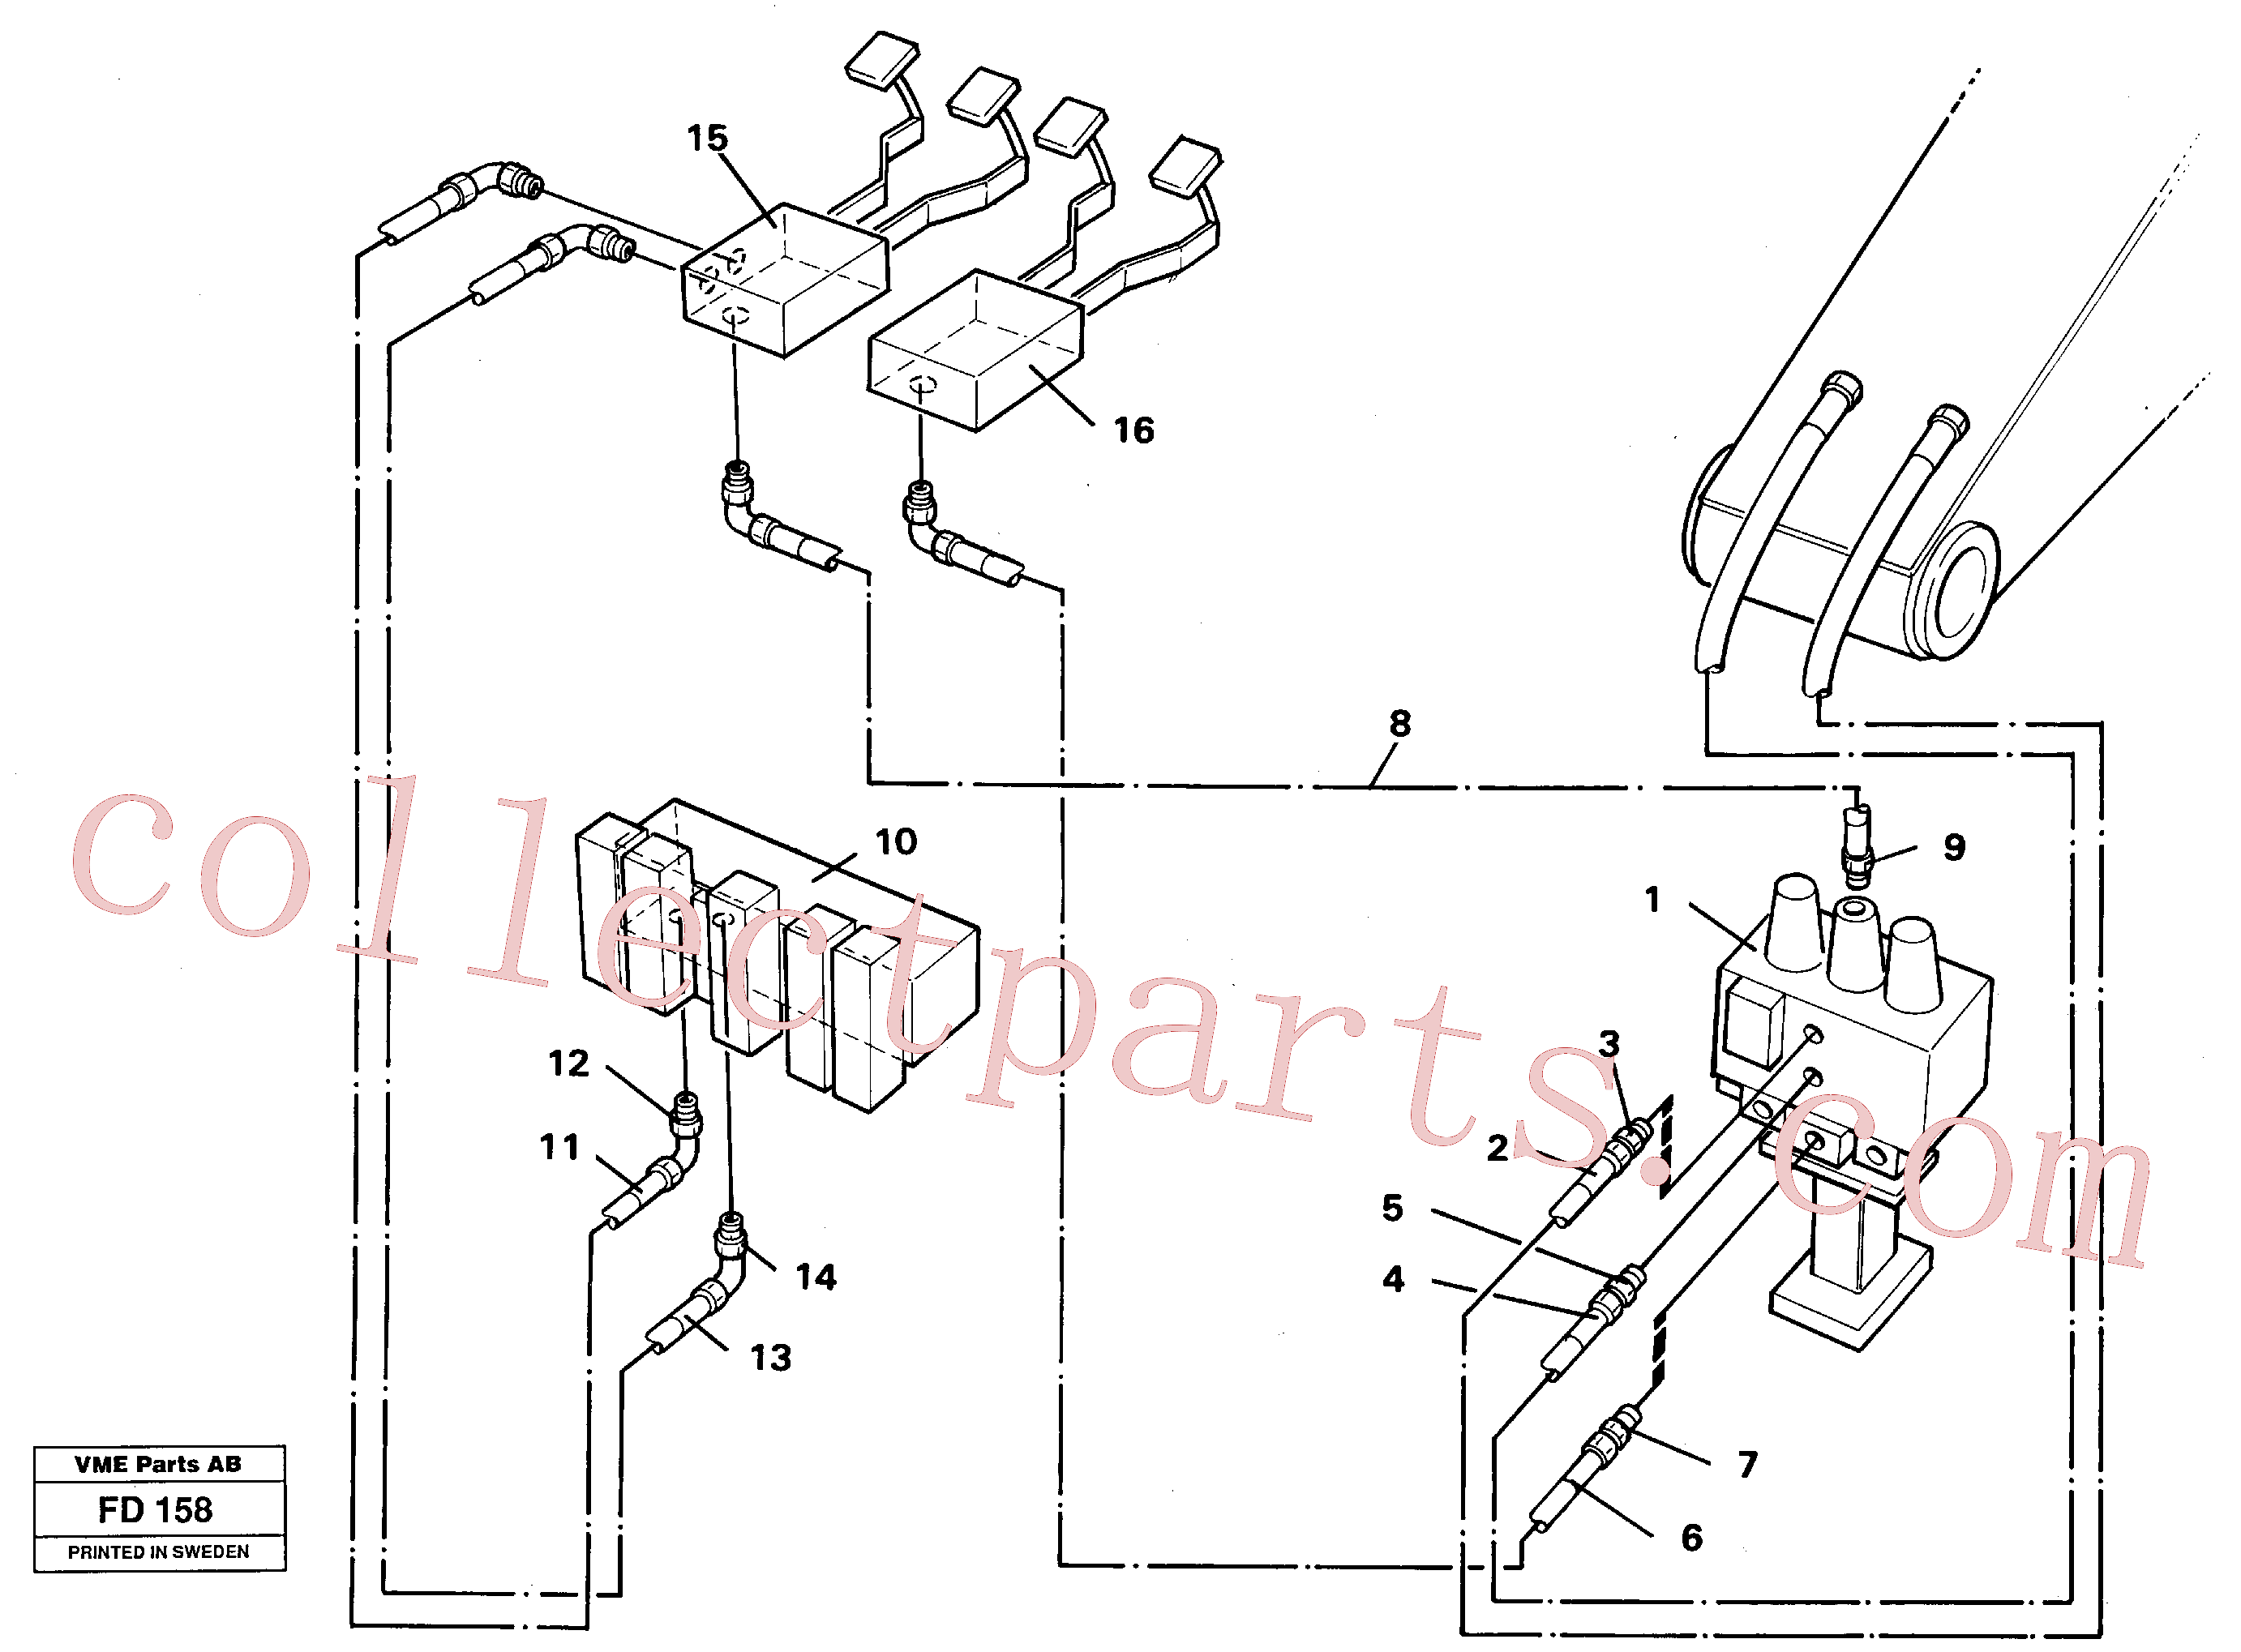 VOE14250306 for Volvo Slope/grab equipment, base machine(FD158 assembly)